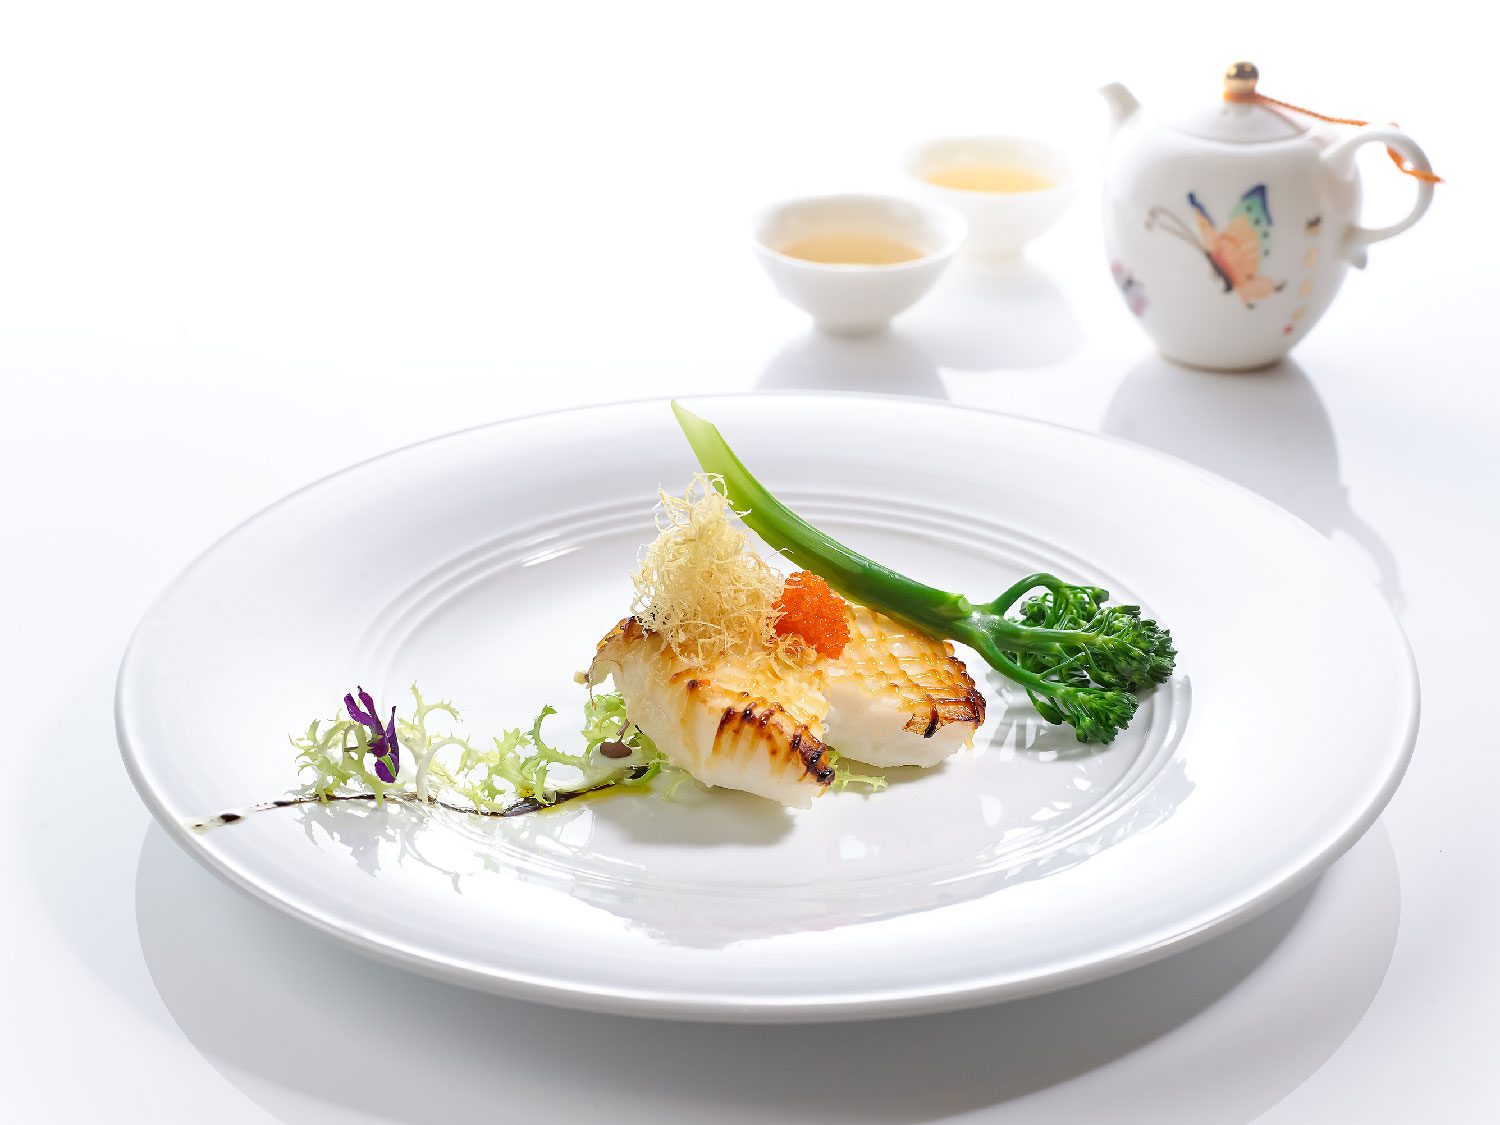 Holiday-Inn-Singapore-Atrium_Baked-Sea-Pearch-with-Miso-Sauce_Xin-Cuisine